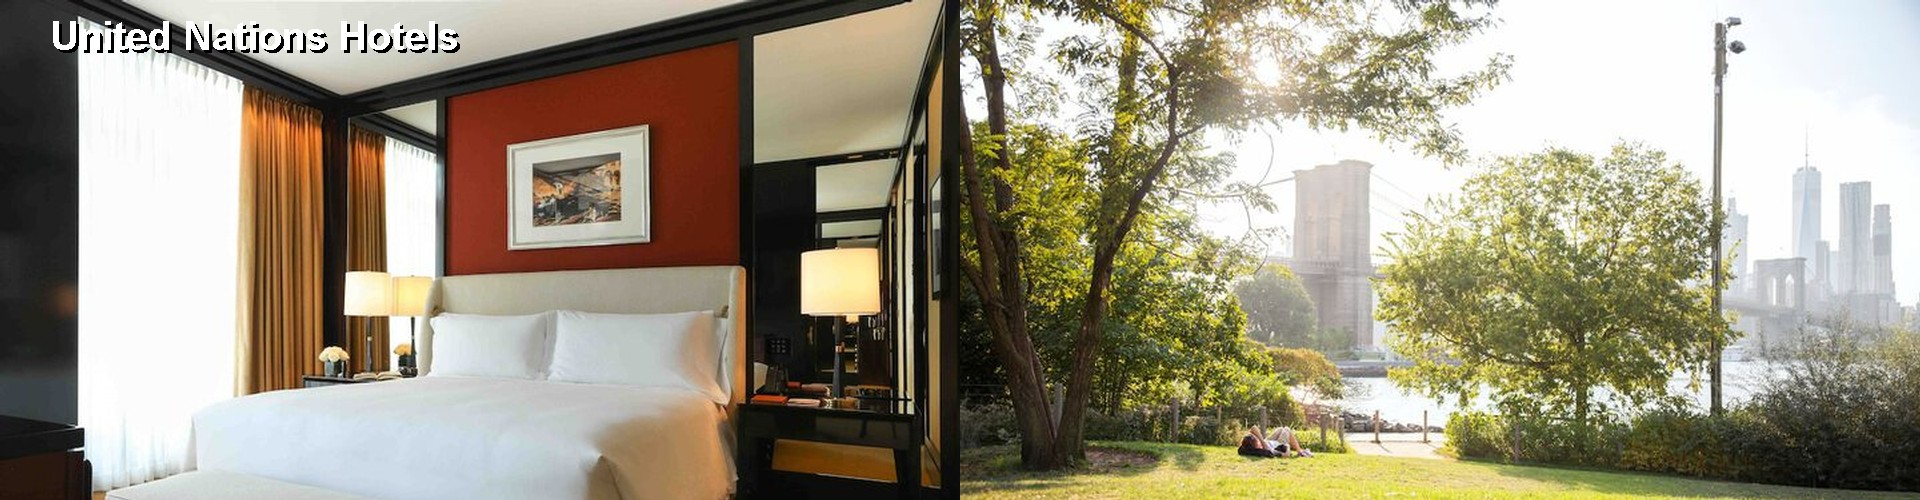 5 Best Hotels near United Nations